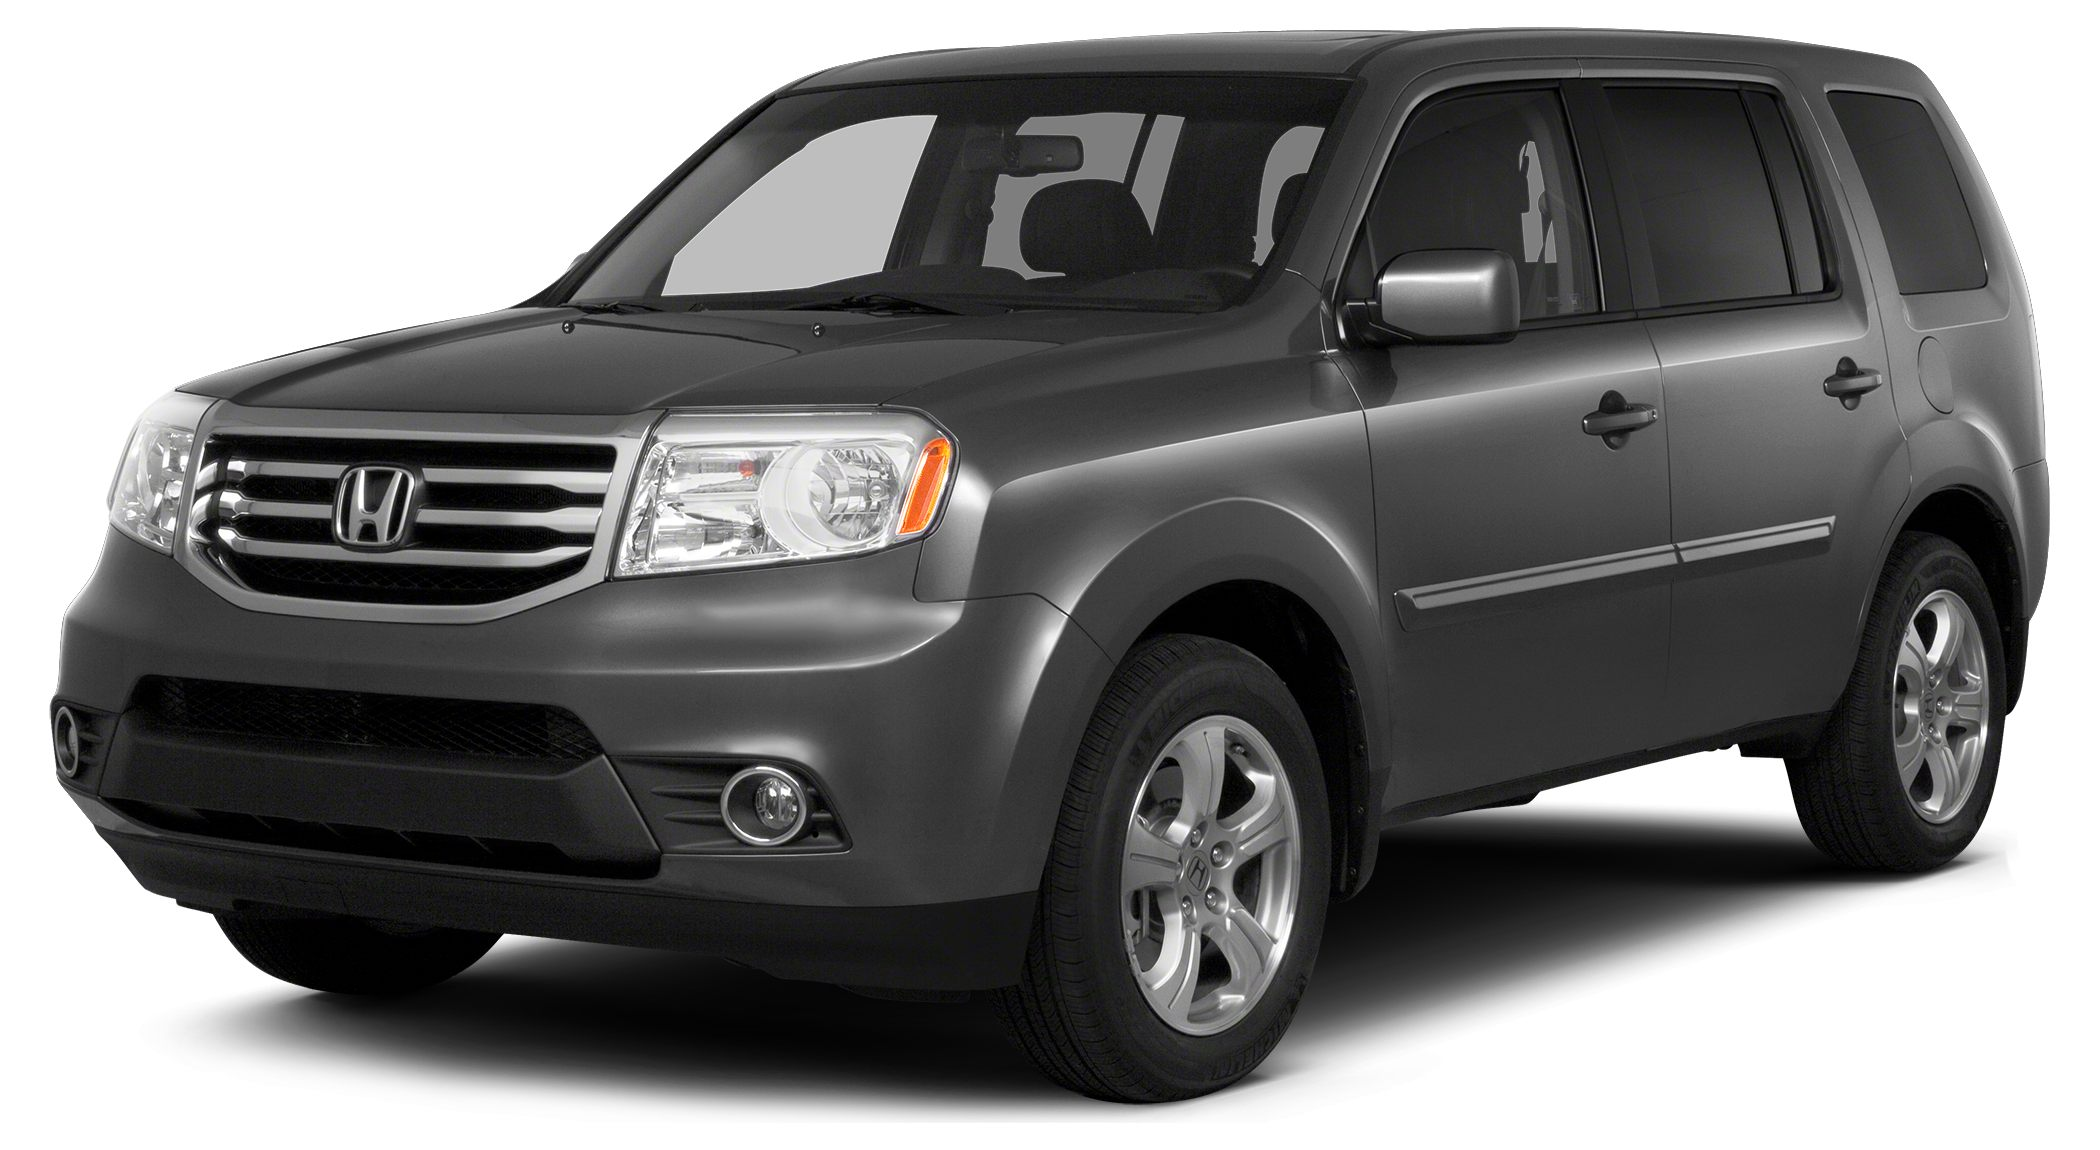 2013 Honda Pilot EX-L Here at Lake Keowee Ford our customers come first and our prices will not be